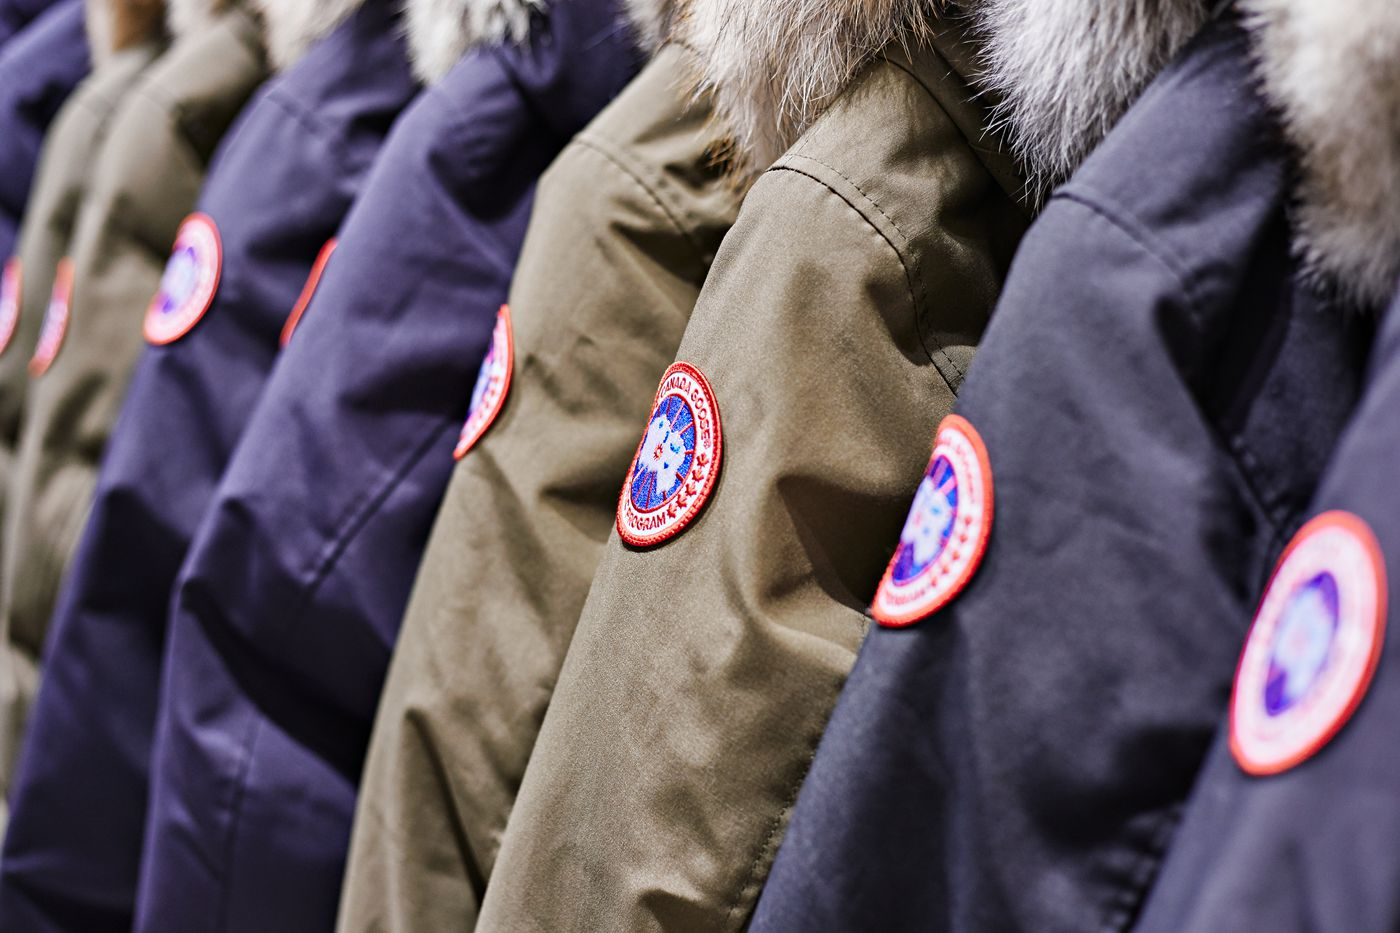 Canada Goose and Moncler: the race to make warm winter